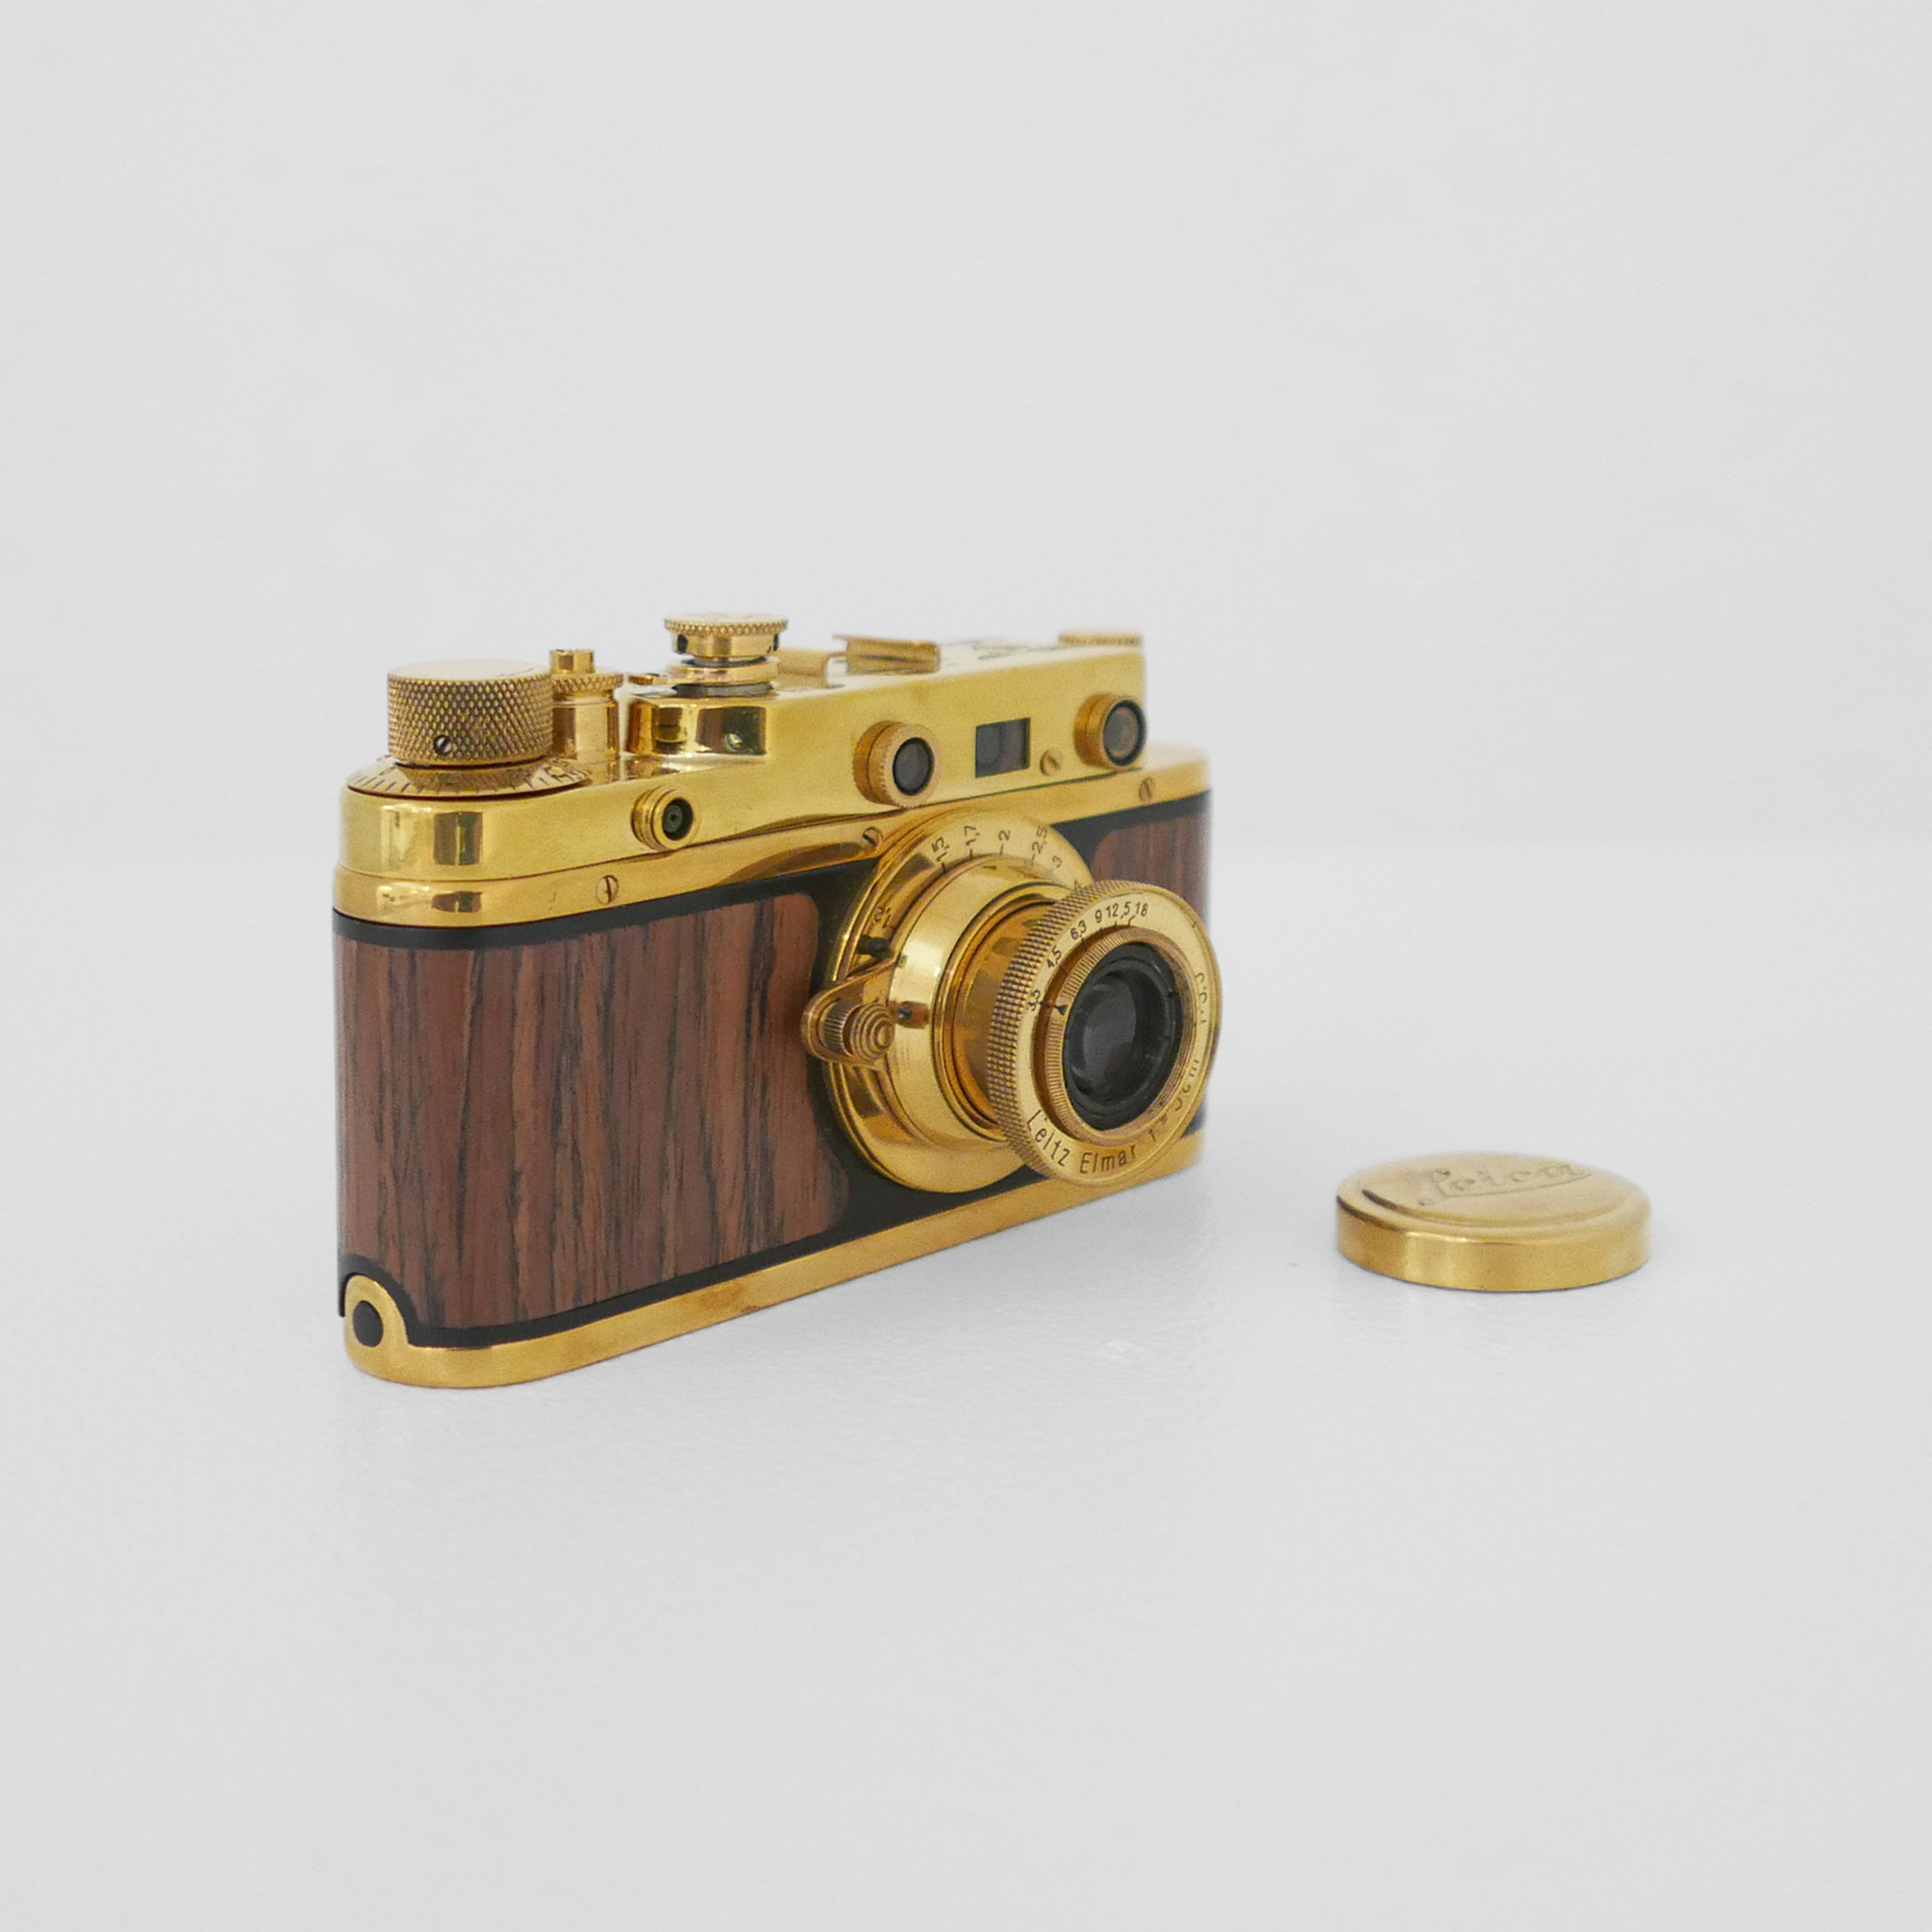 leica luftwaffer vintage camera SOLD